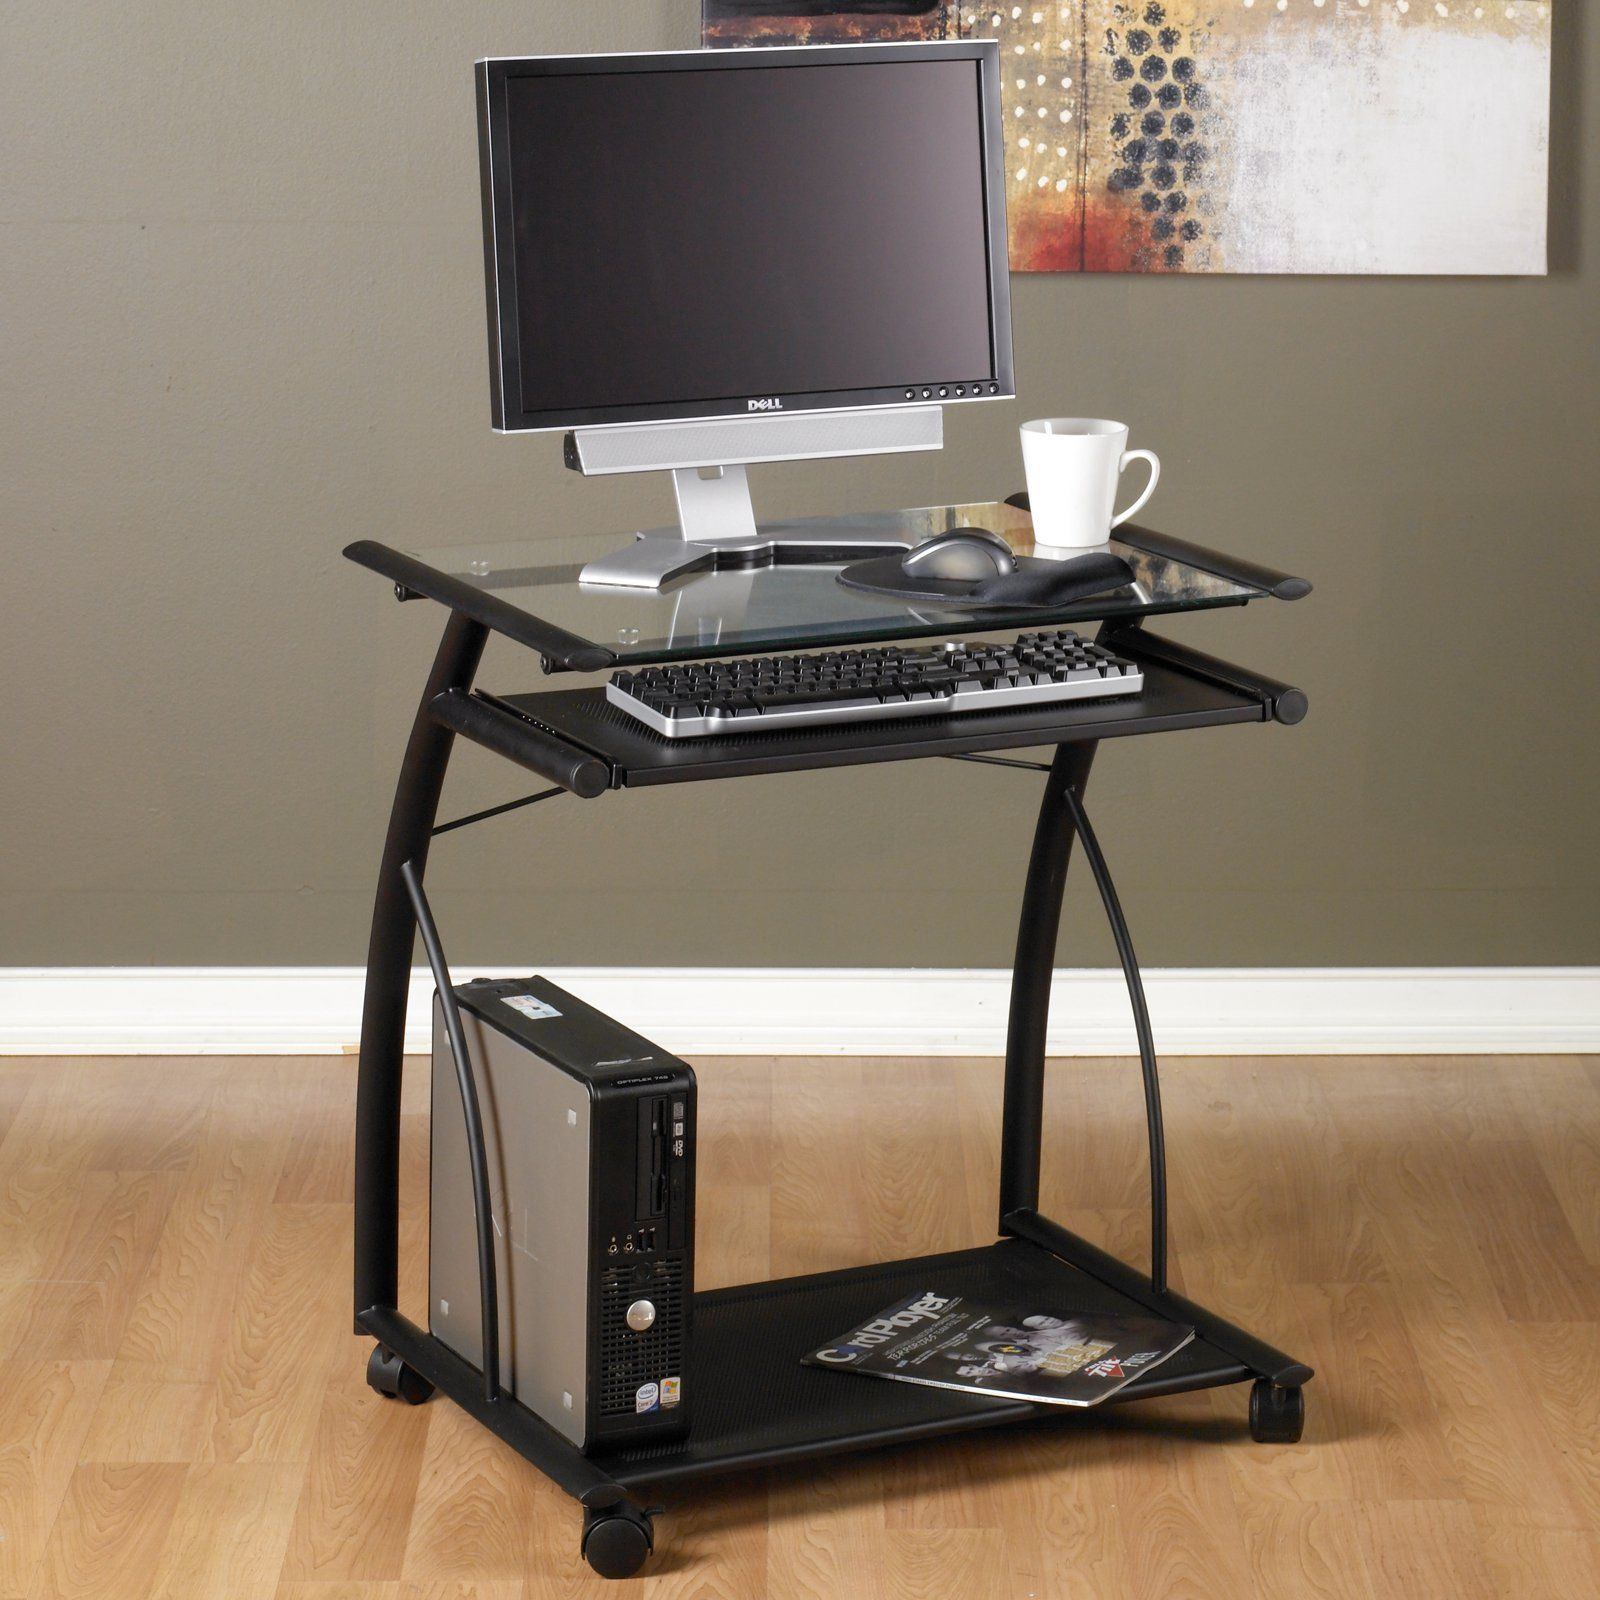 Printer Computer Stand Calico Designs L Cart Black Clear Gl 73 28 Hayneedle